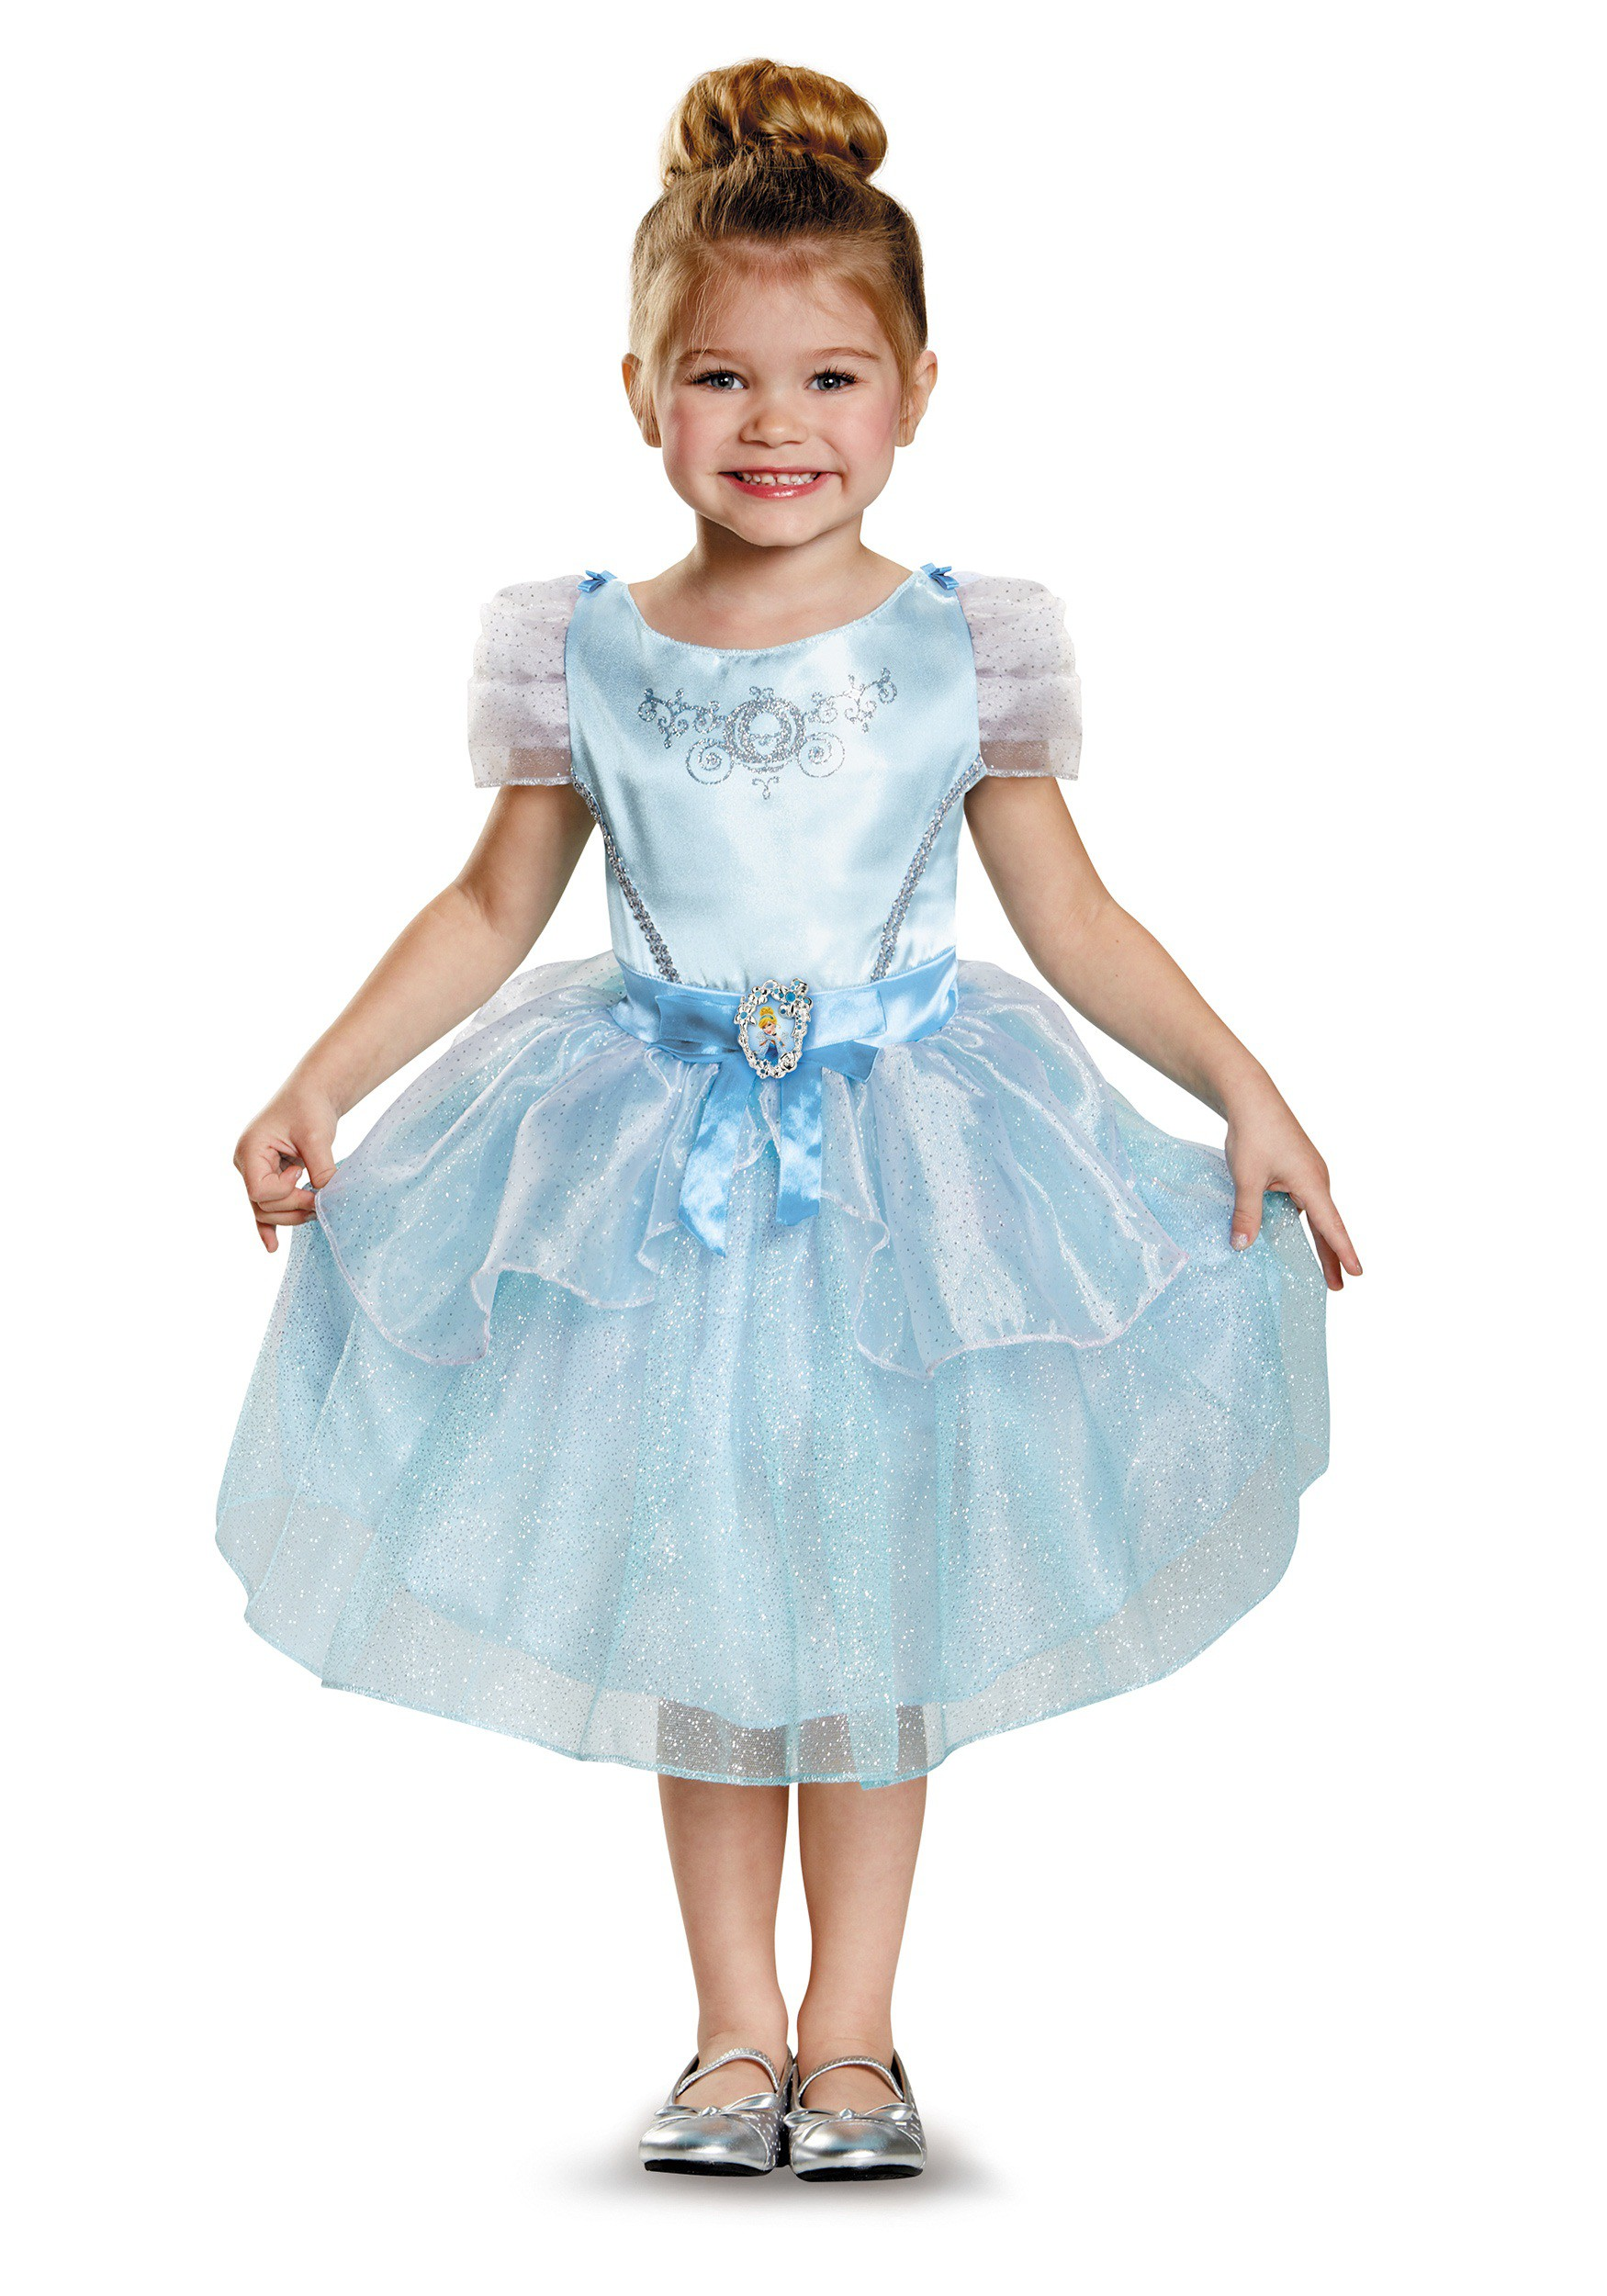 Princess Dress Shoes For Toddlers